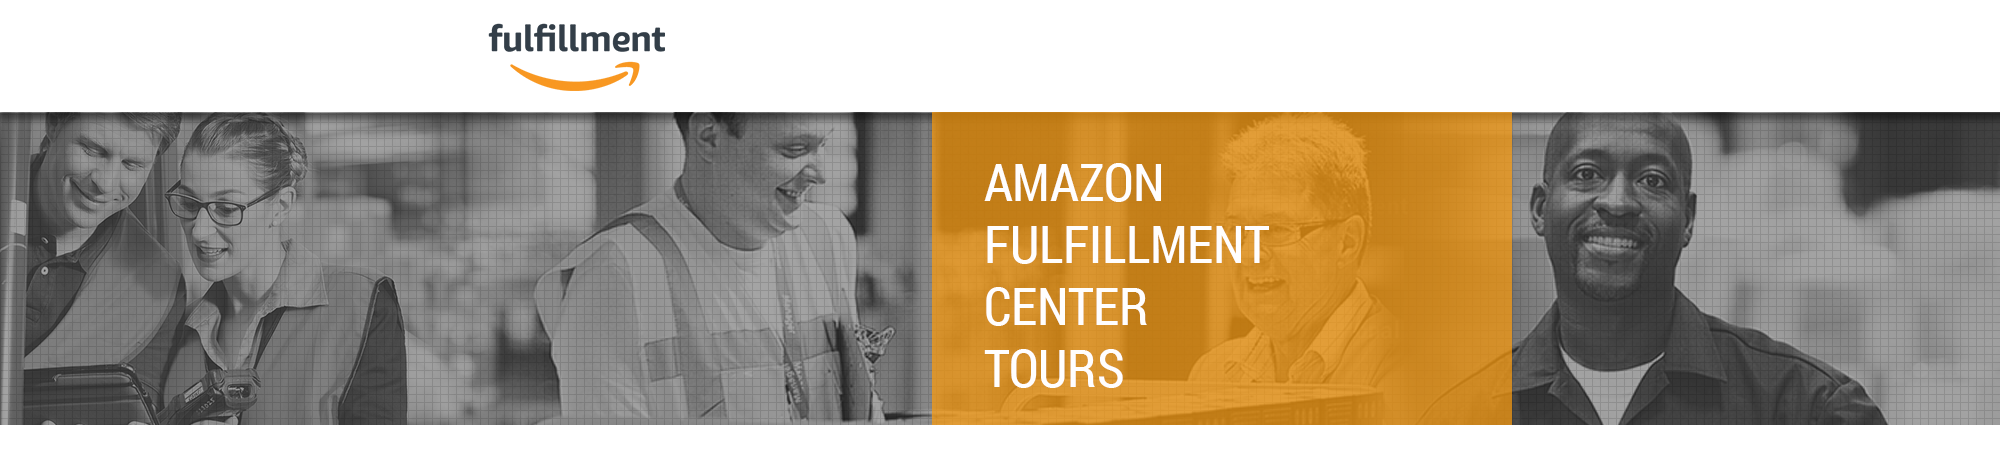 Amazon Fulfillment Center Tour - Chattanooga, TN